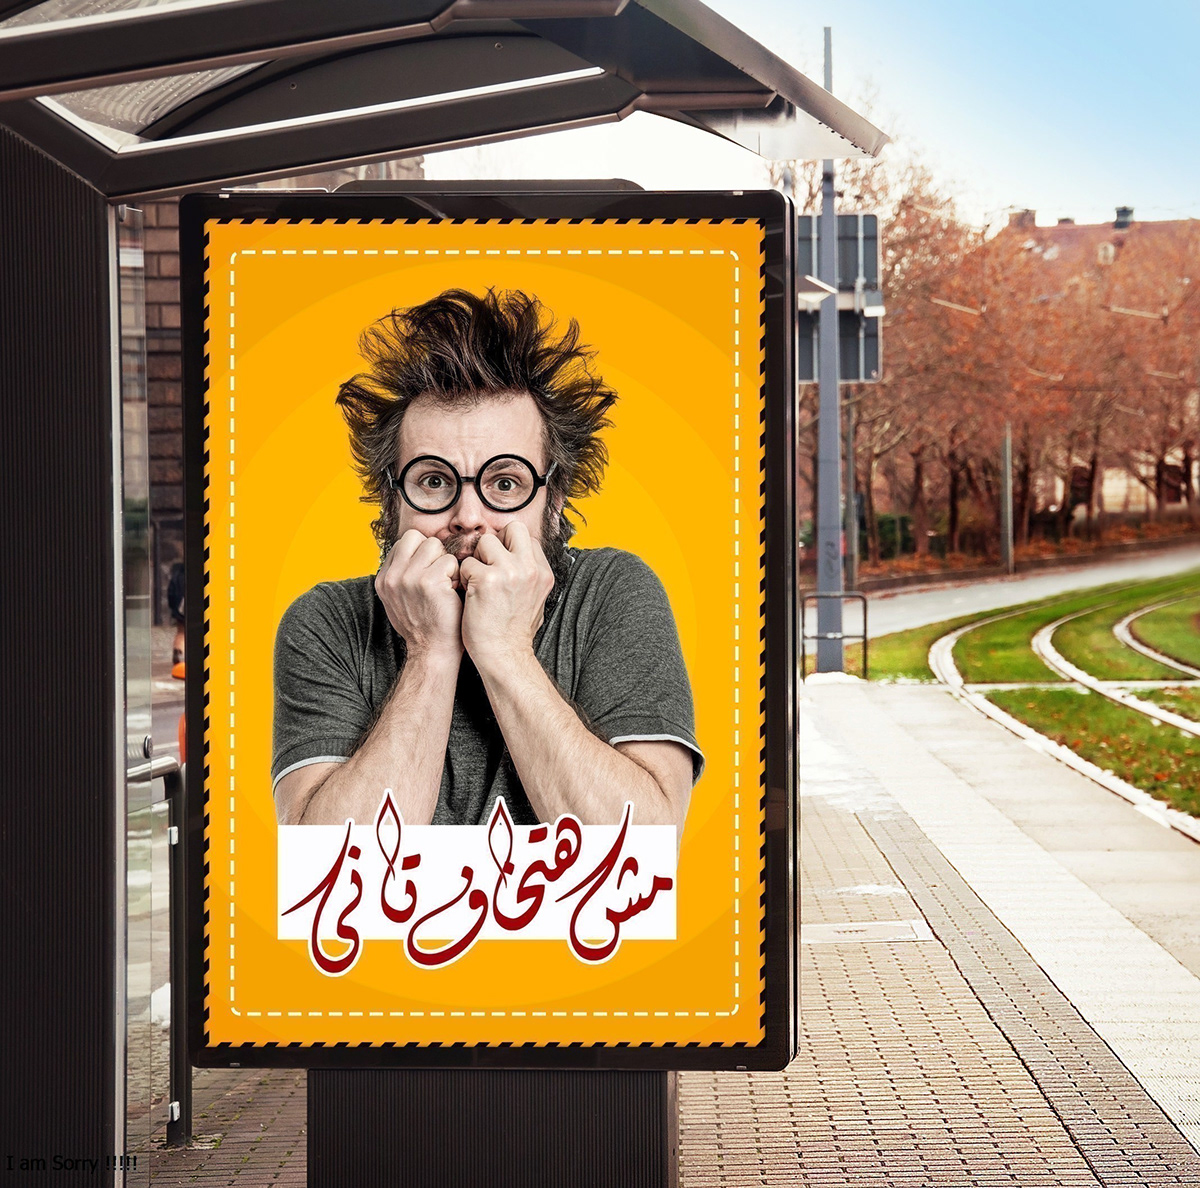 Advertising  Classic comedy  fear funny graphic design  influential nostalgia photoshop Travel